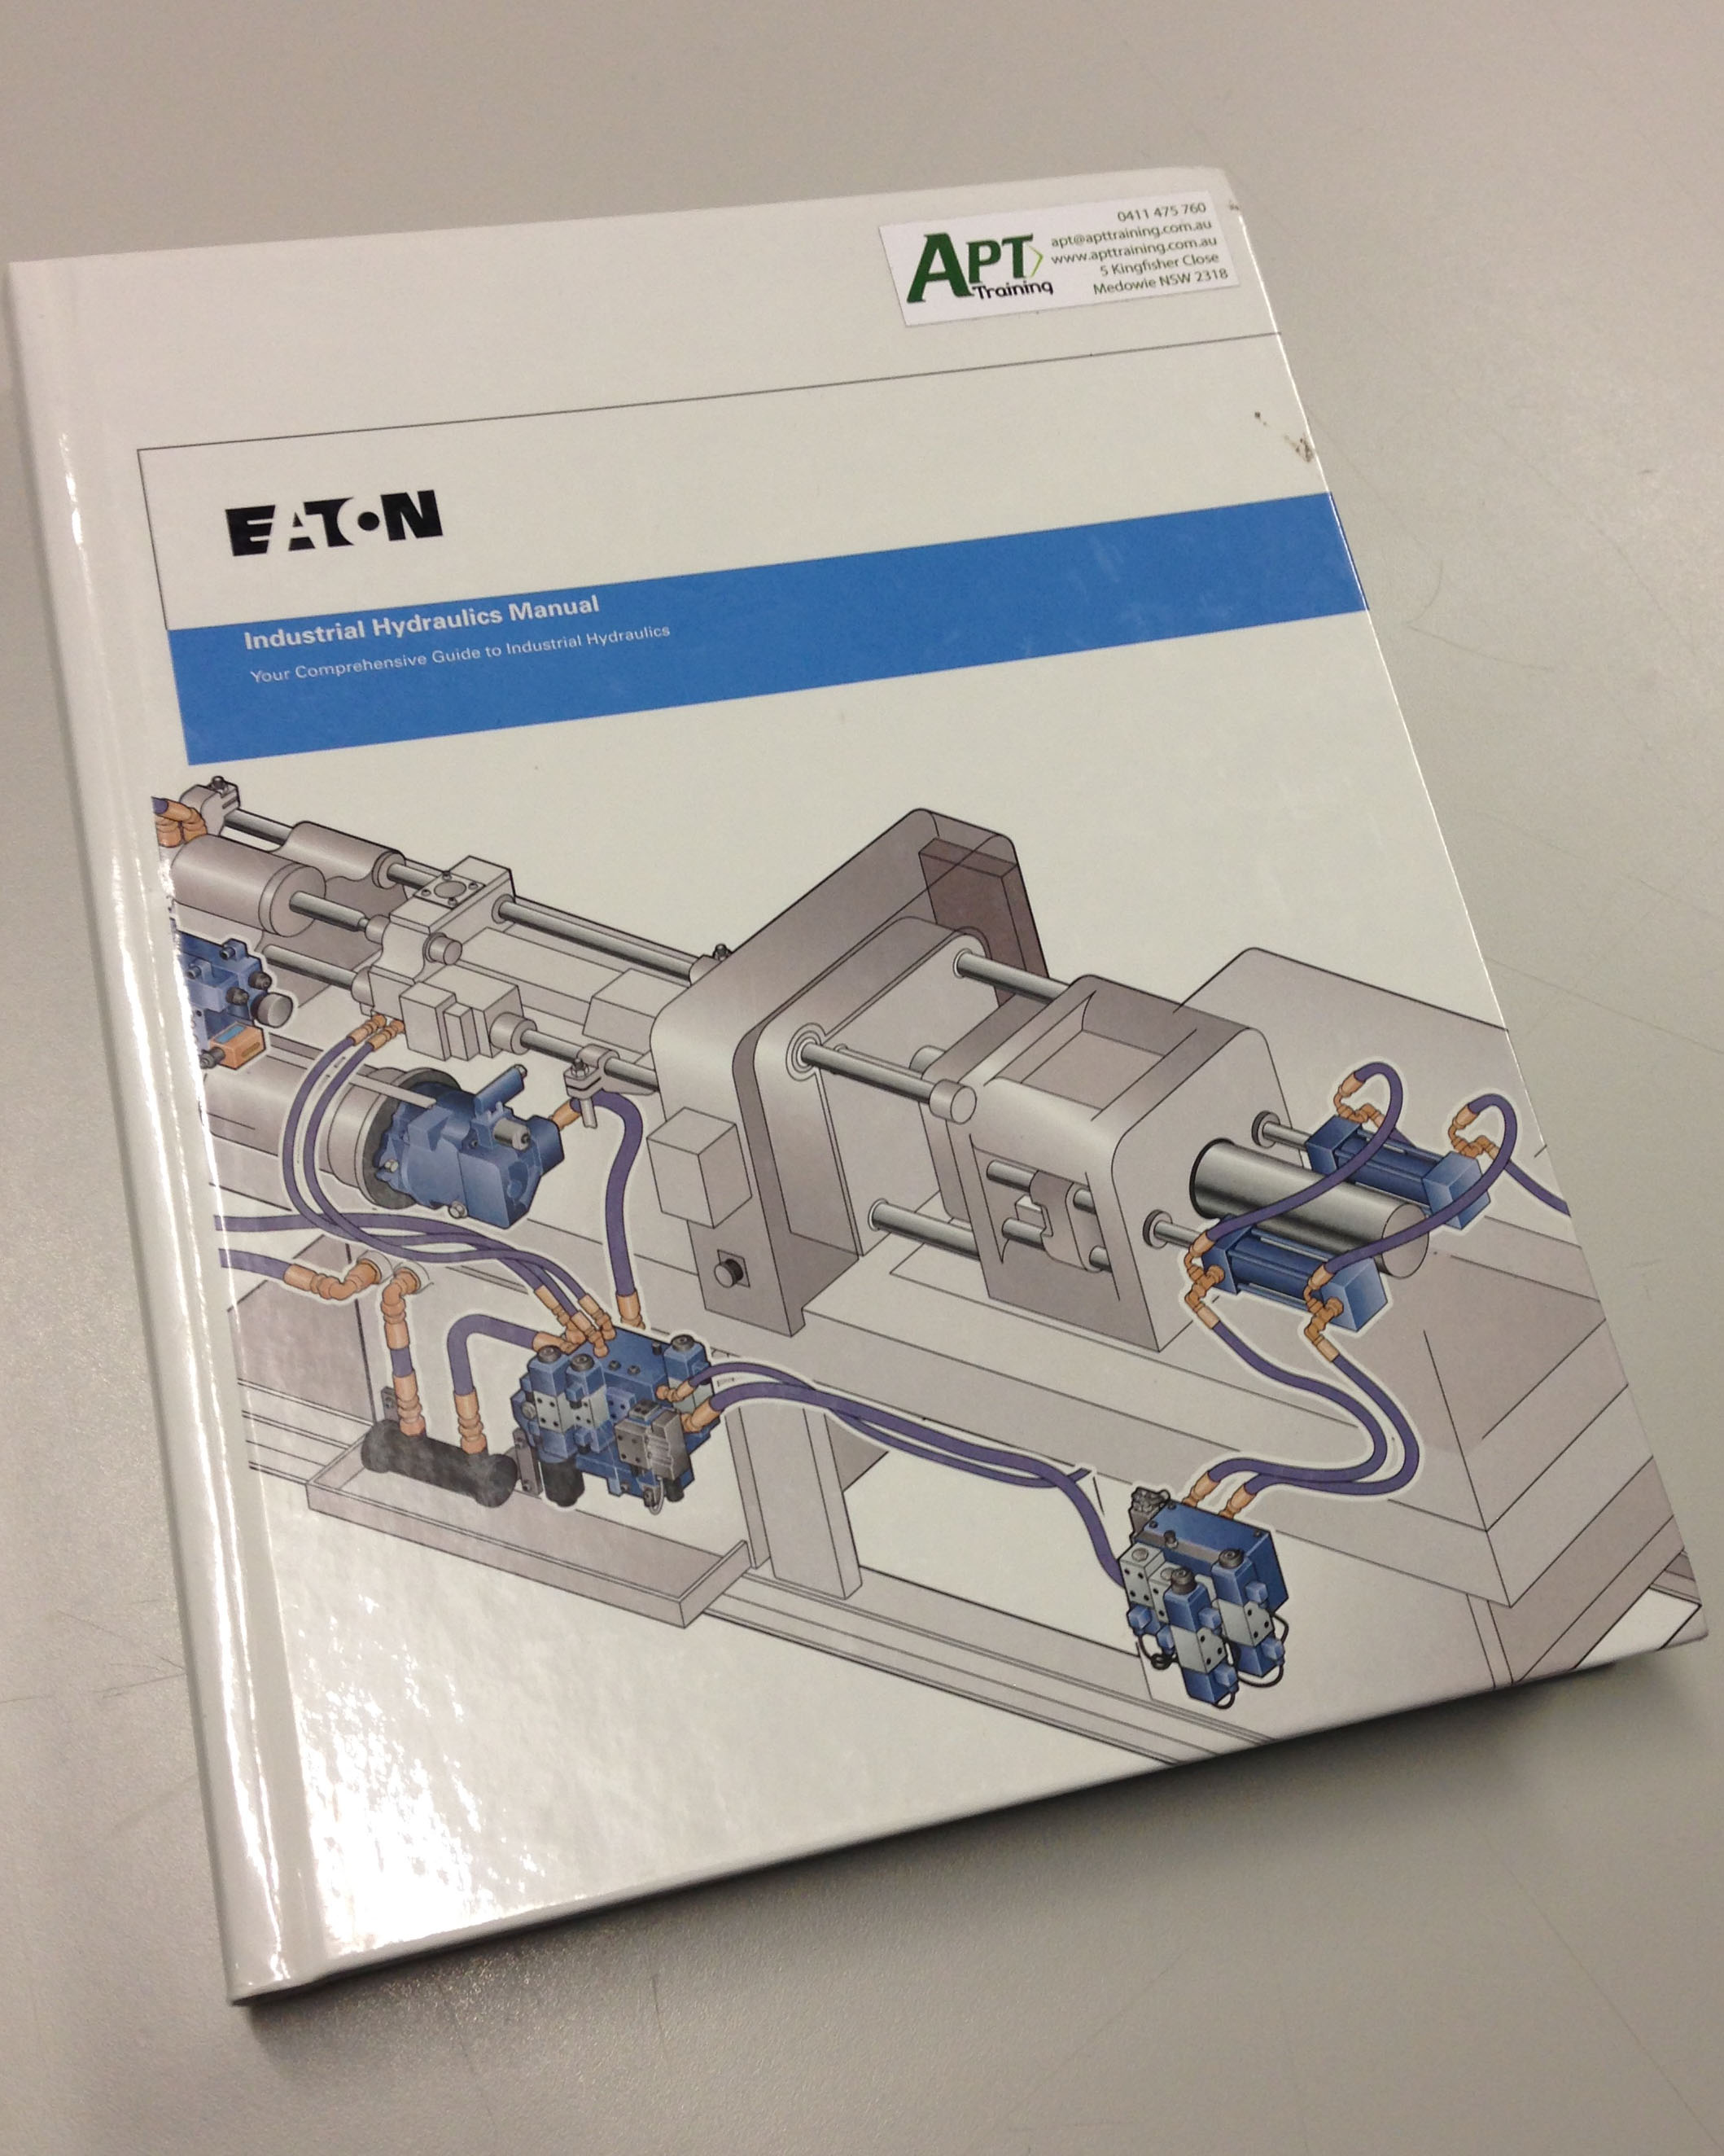 Industrial hydraulics manual: eaton (vickers): 9780978802202.